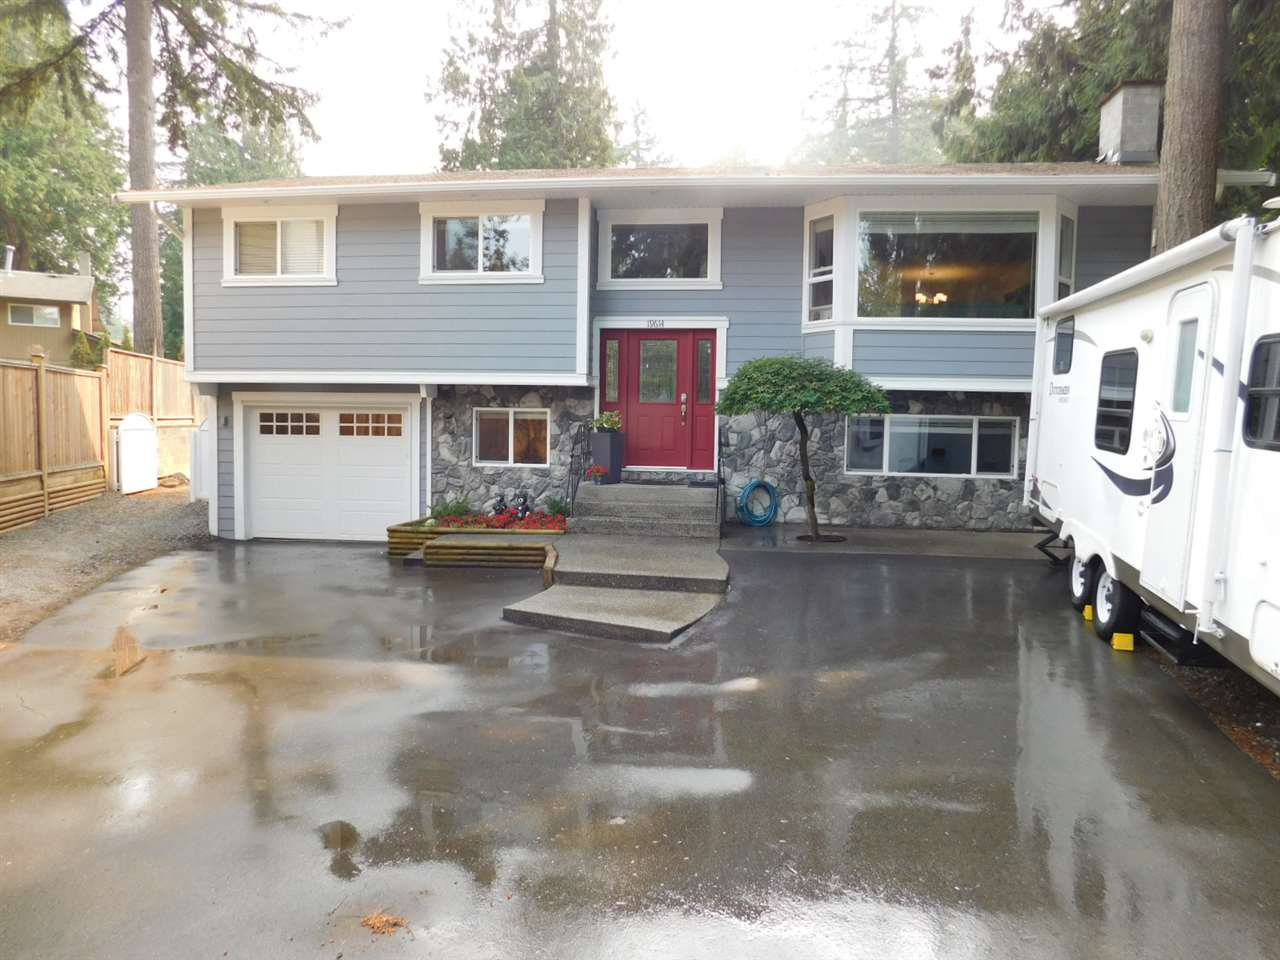 Main Photo: 19614 47 Avenue in Langley: Langley City House for sale : MLS®# R2306828